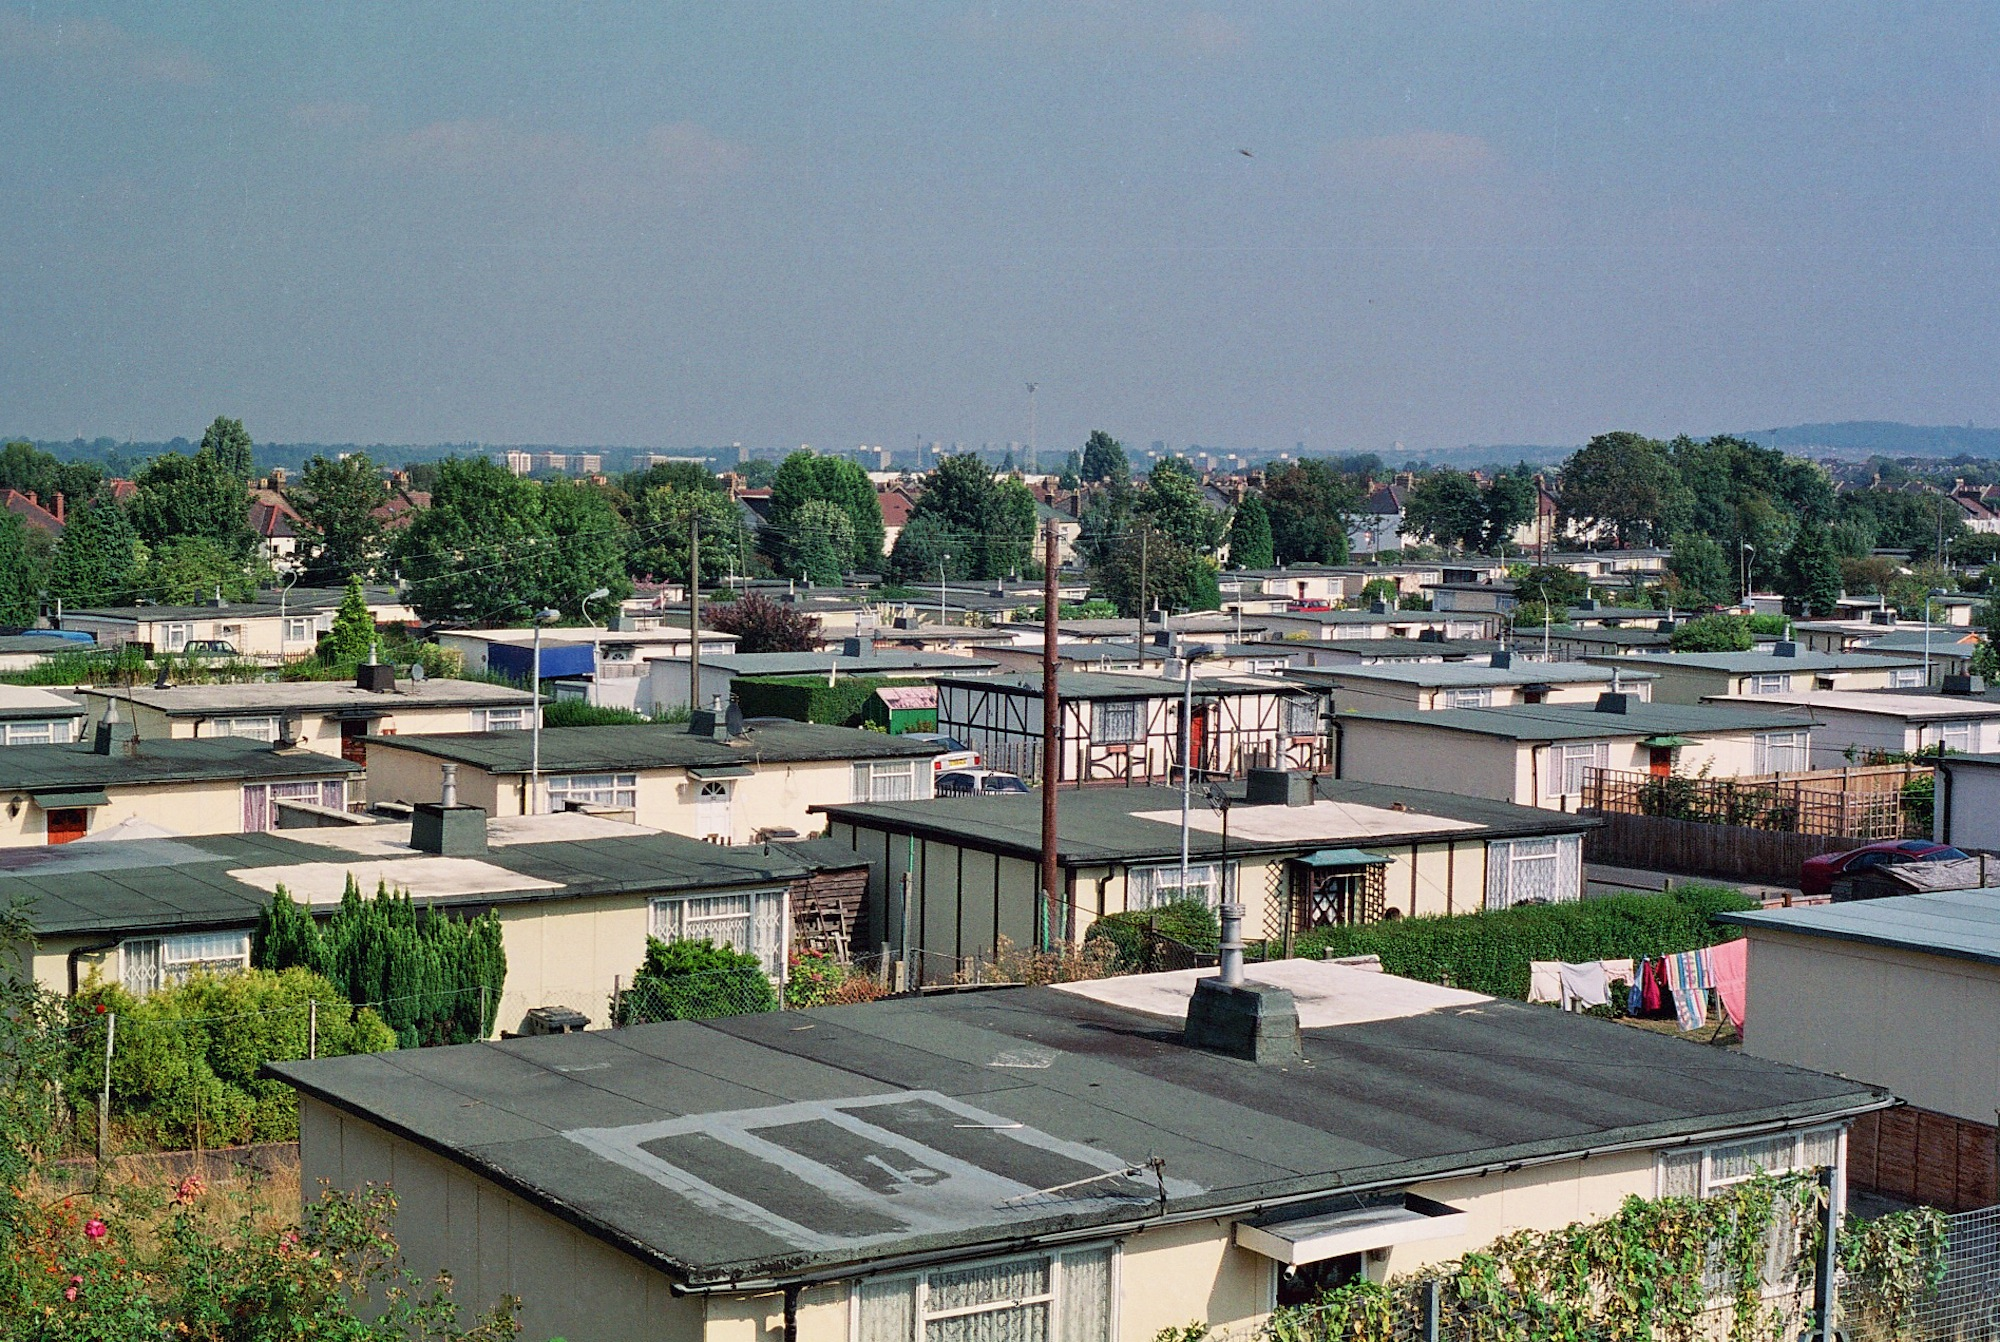 Overview of the Excalibur Estate in Catford, South London, 2004.